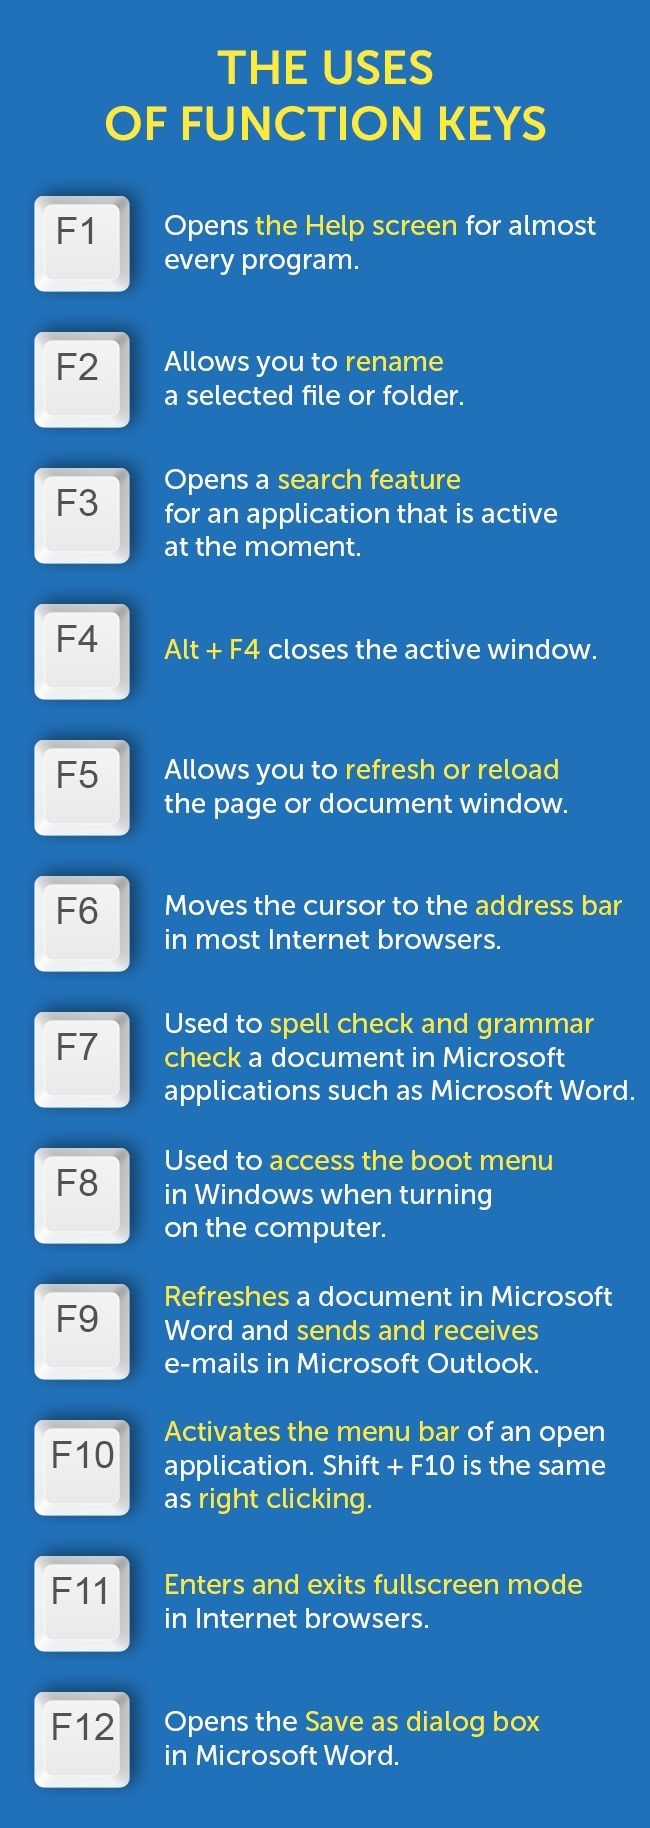 We have all seen function keys before. They are those keys marked F1 to F12 on our computer keyboards. Most of us rarely use these keys when at the computer, but knowing how to use them can be really helpful. Click HERE! Function keys can save you a lot of time if you know how to …